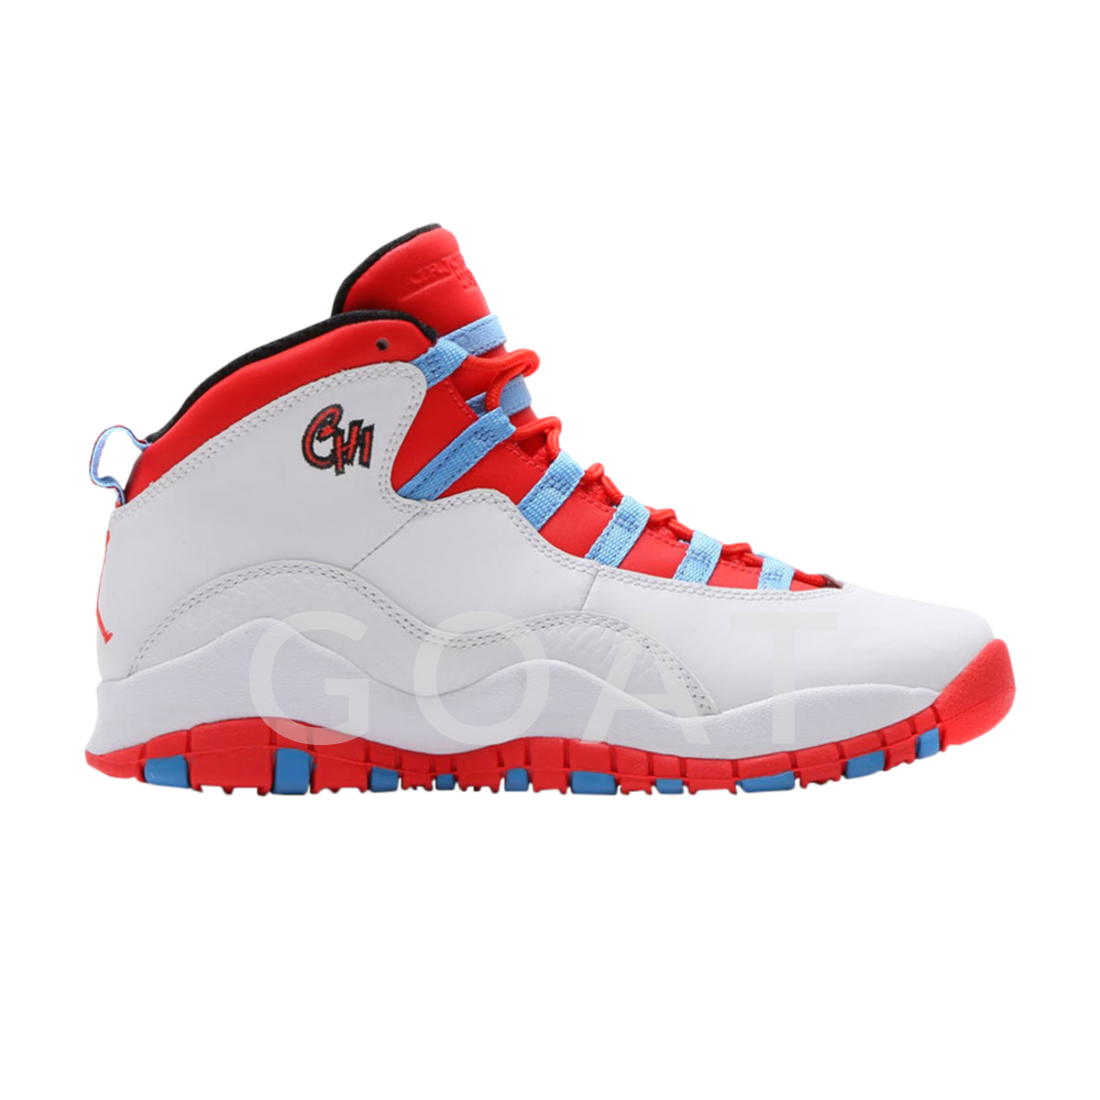 Air Jordan 10 Retro BG 'Chicago 2016' - 310806 114